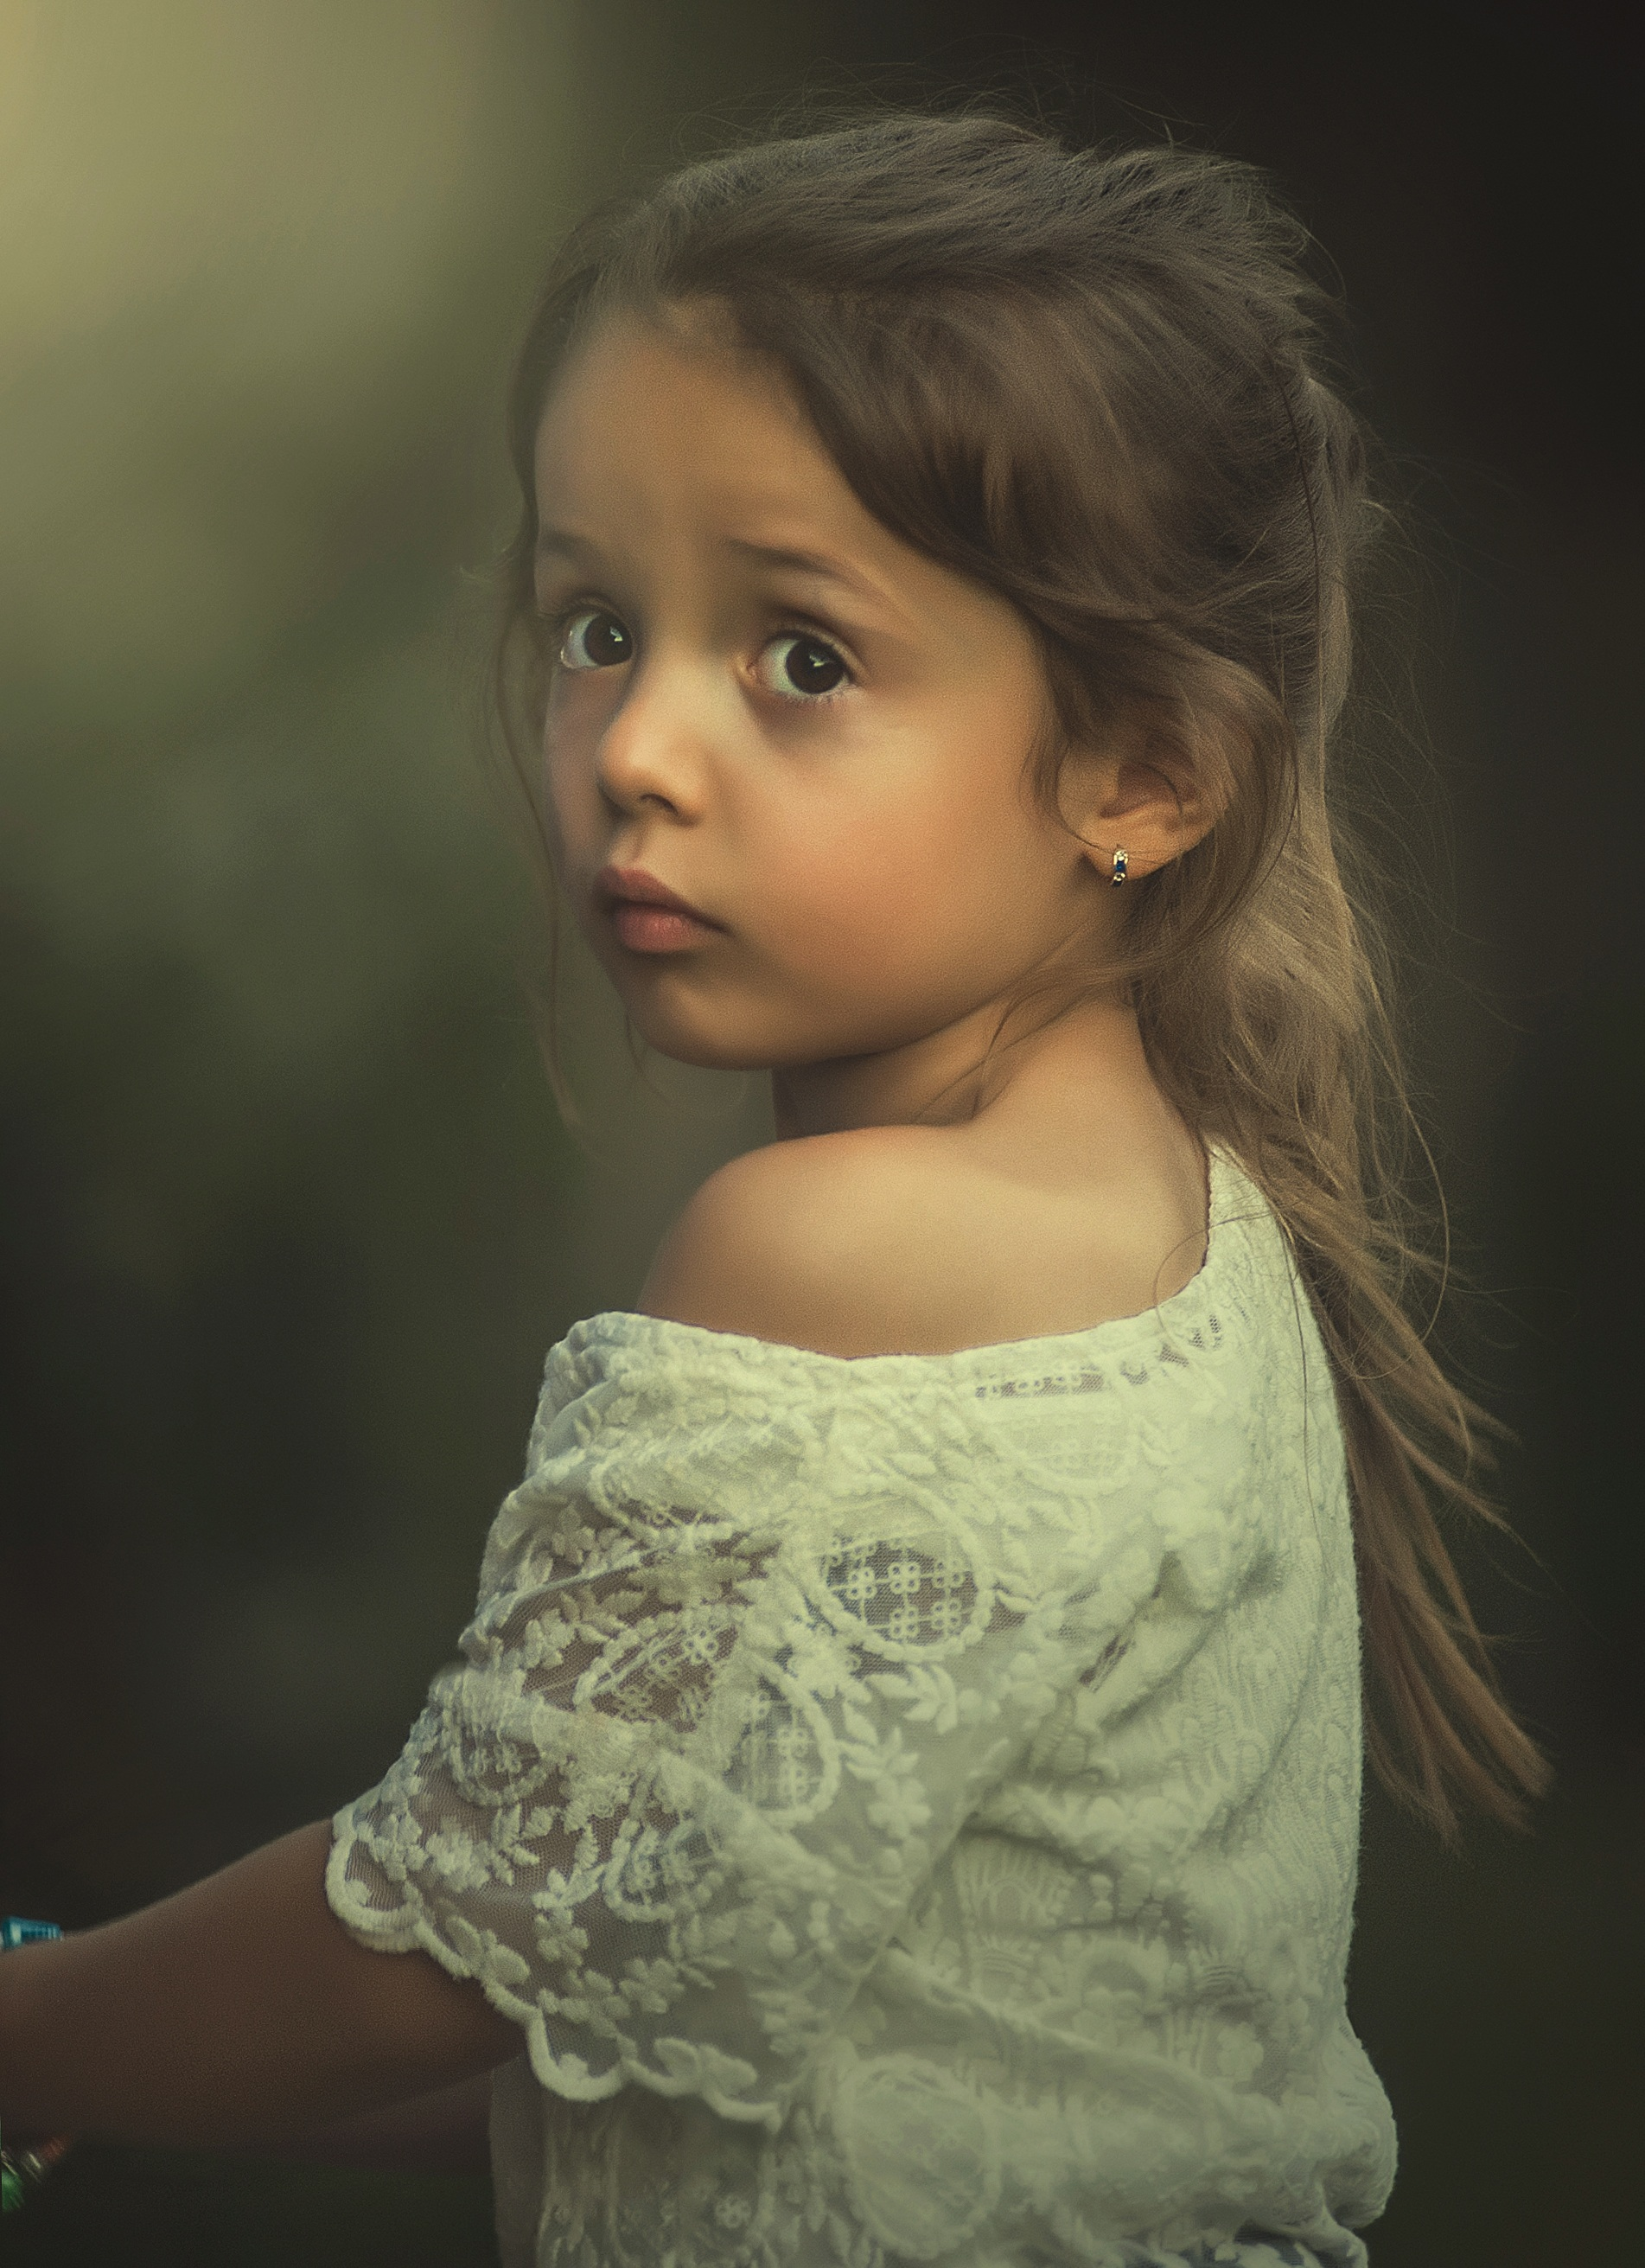 Little Girls Nails And Girls On Pinterest: Free Photo: Cute Little Girl